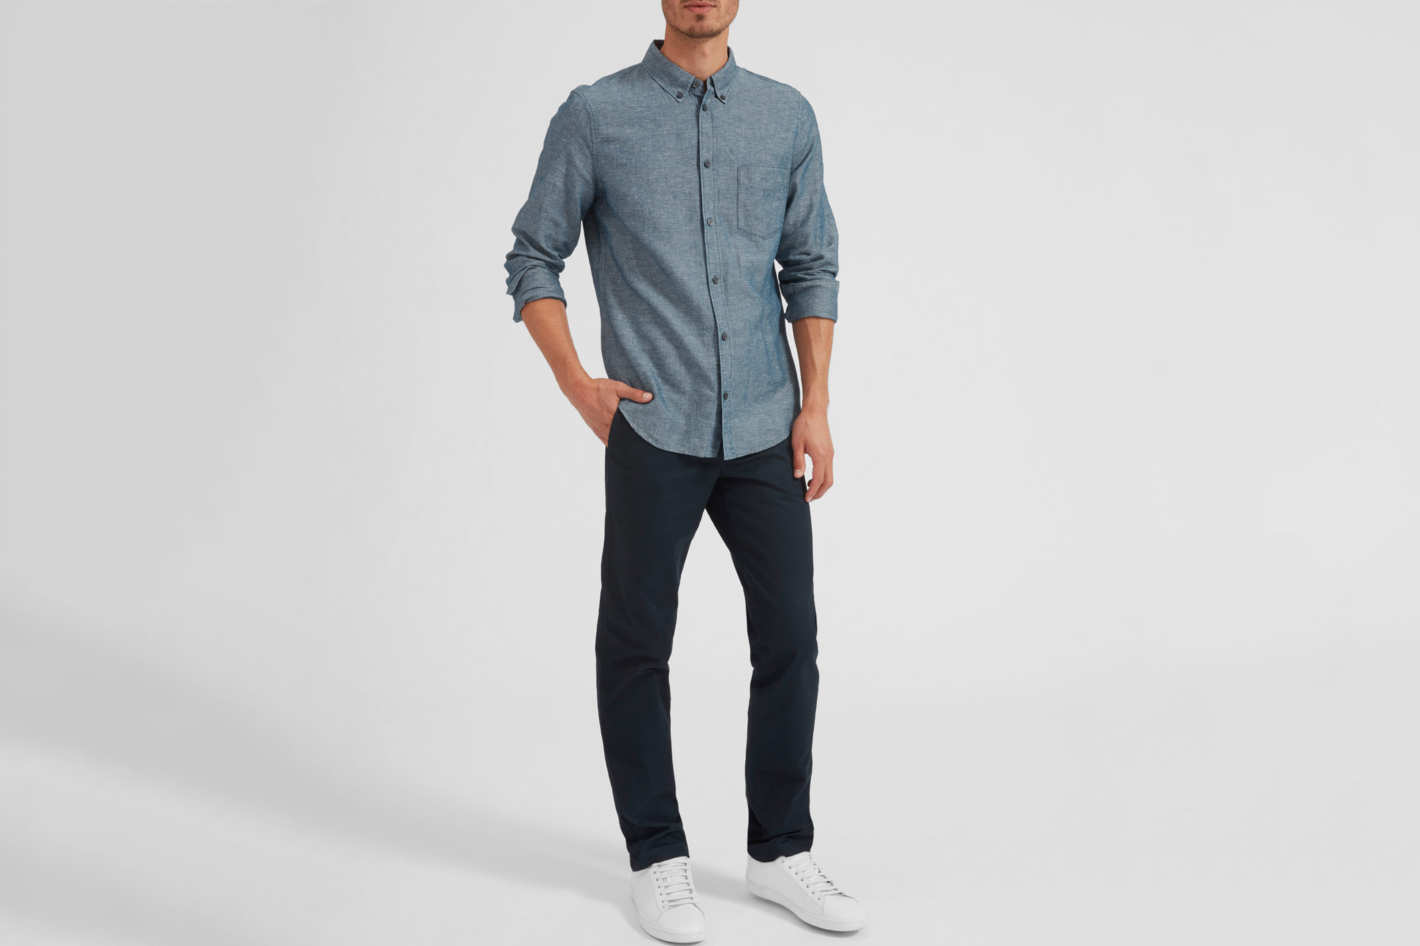 Everlane Men's Heavyweight Slim Chino